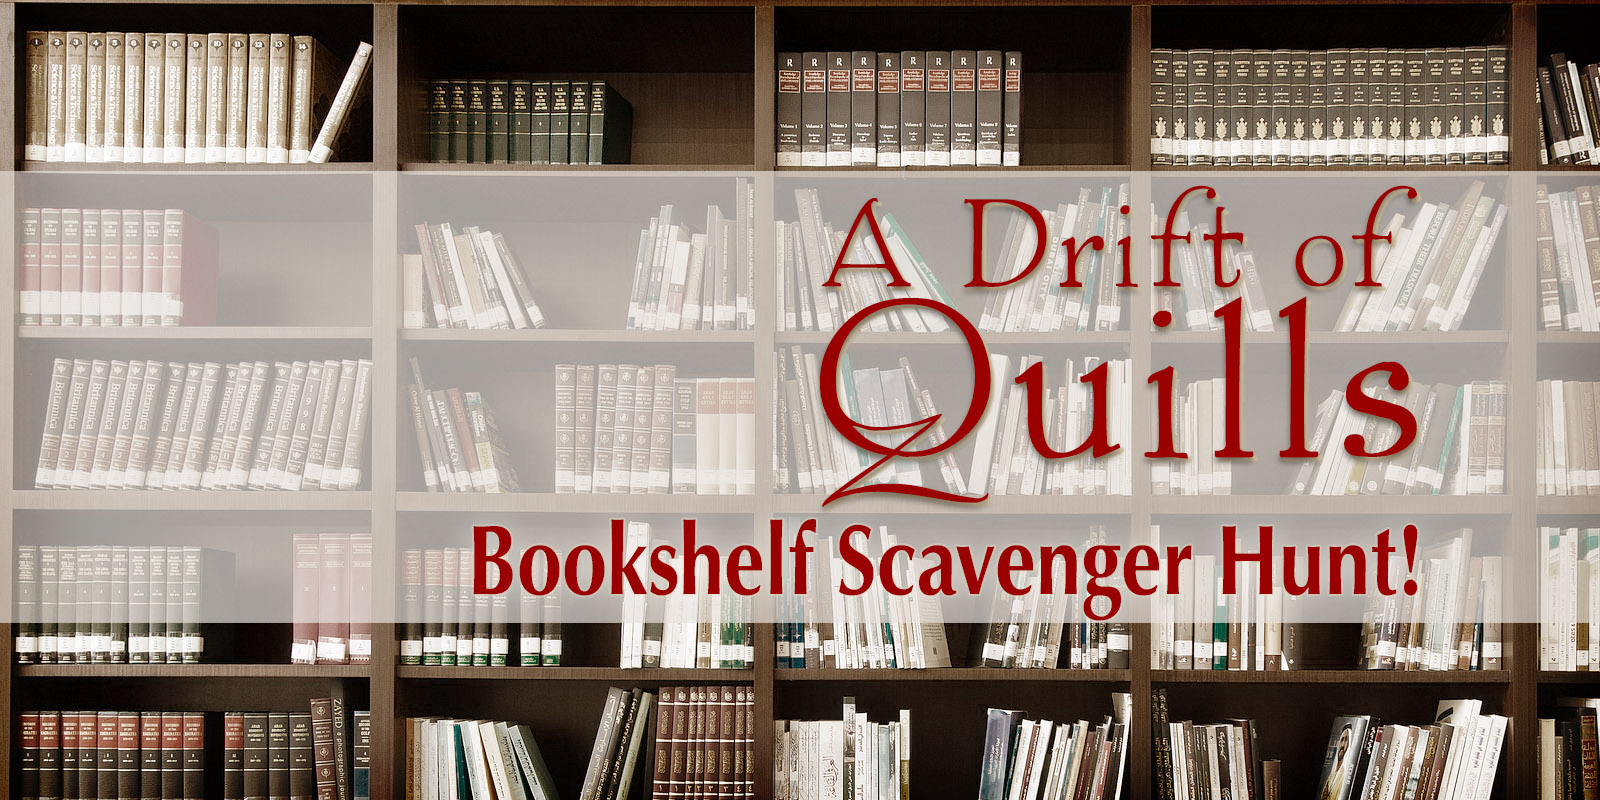 A Drift of Quills comes together to deliver you something wonderfully fun and bookish: a bookshelf scavenger hunt!